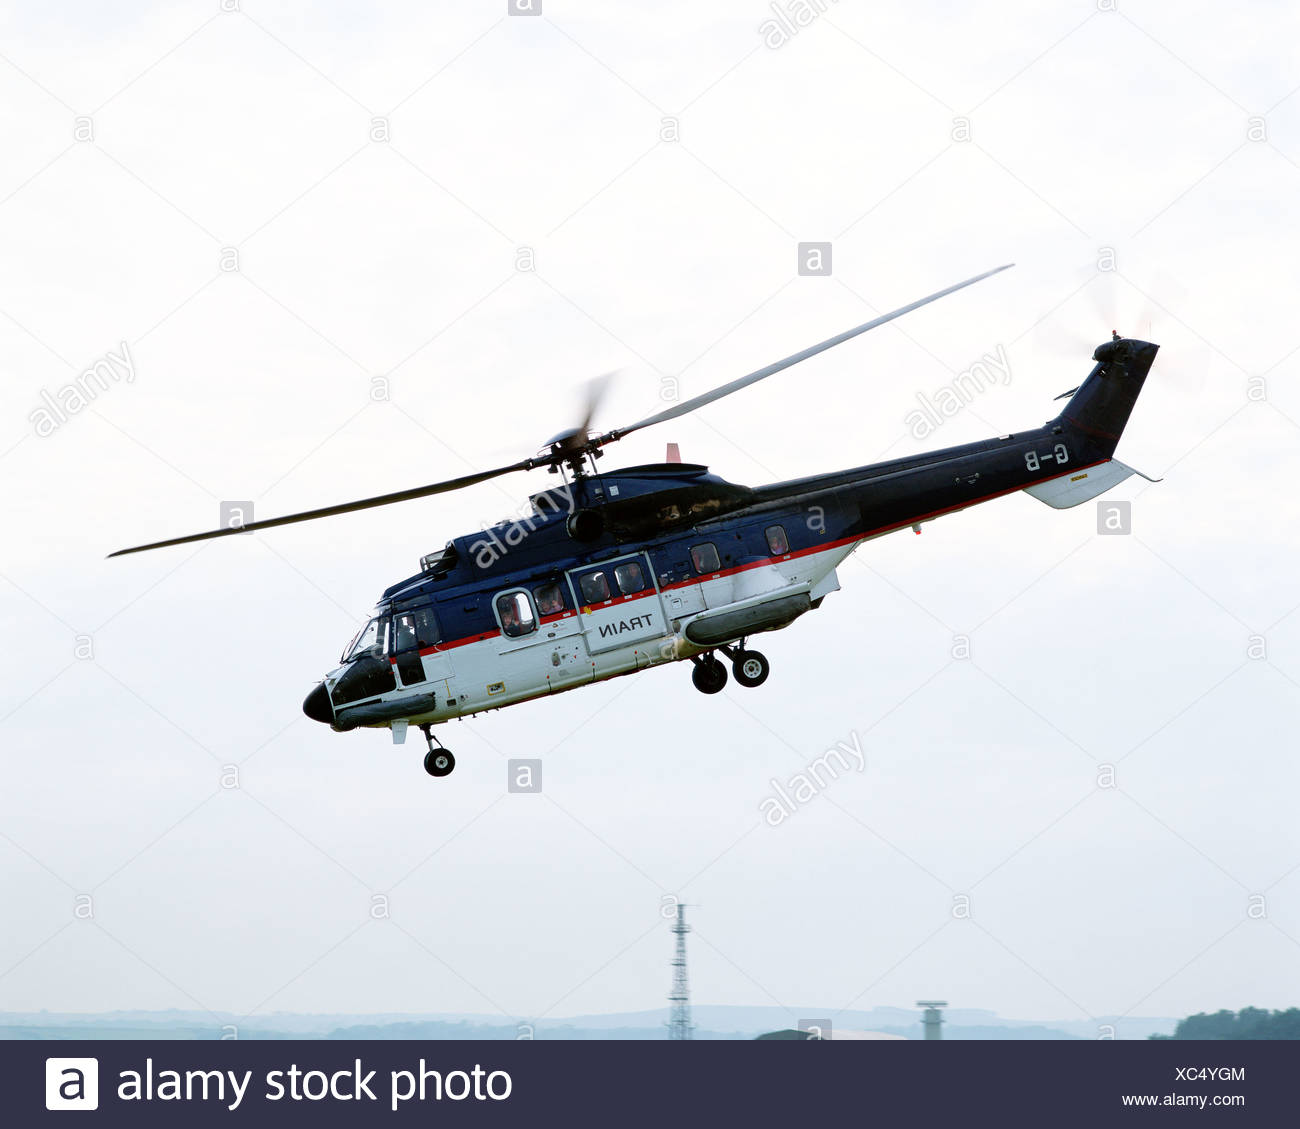 Helicopter landing - Stock Image